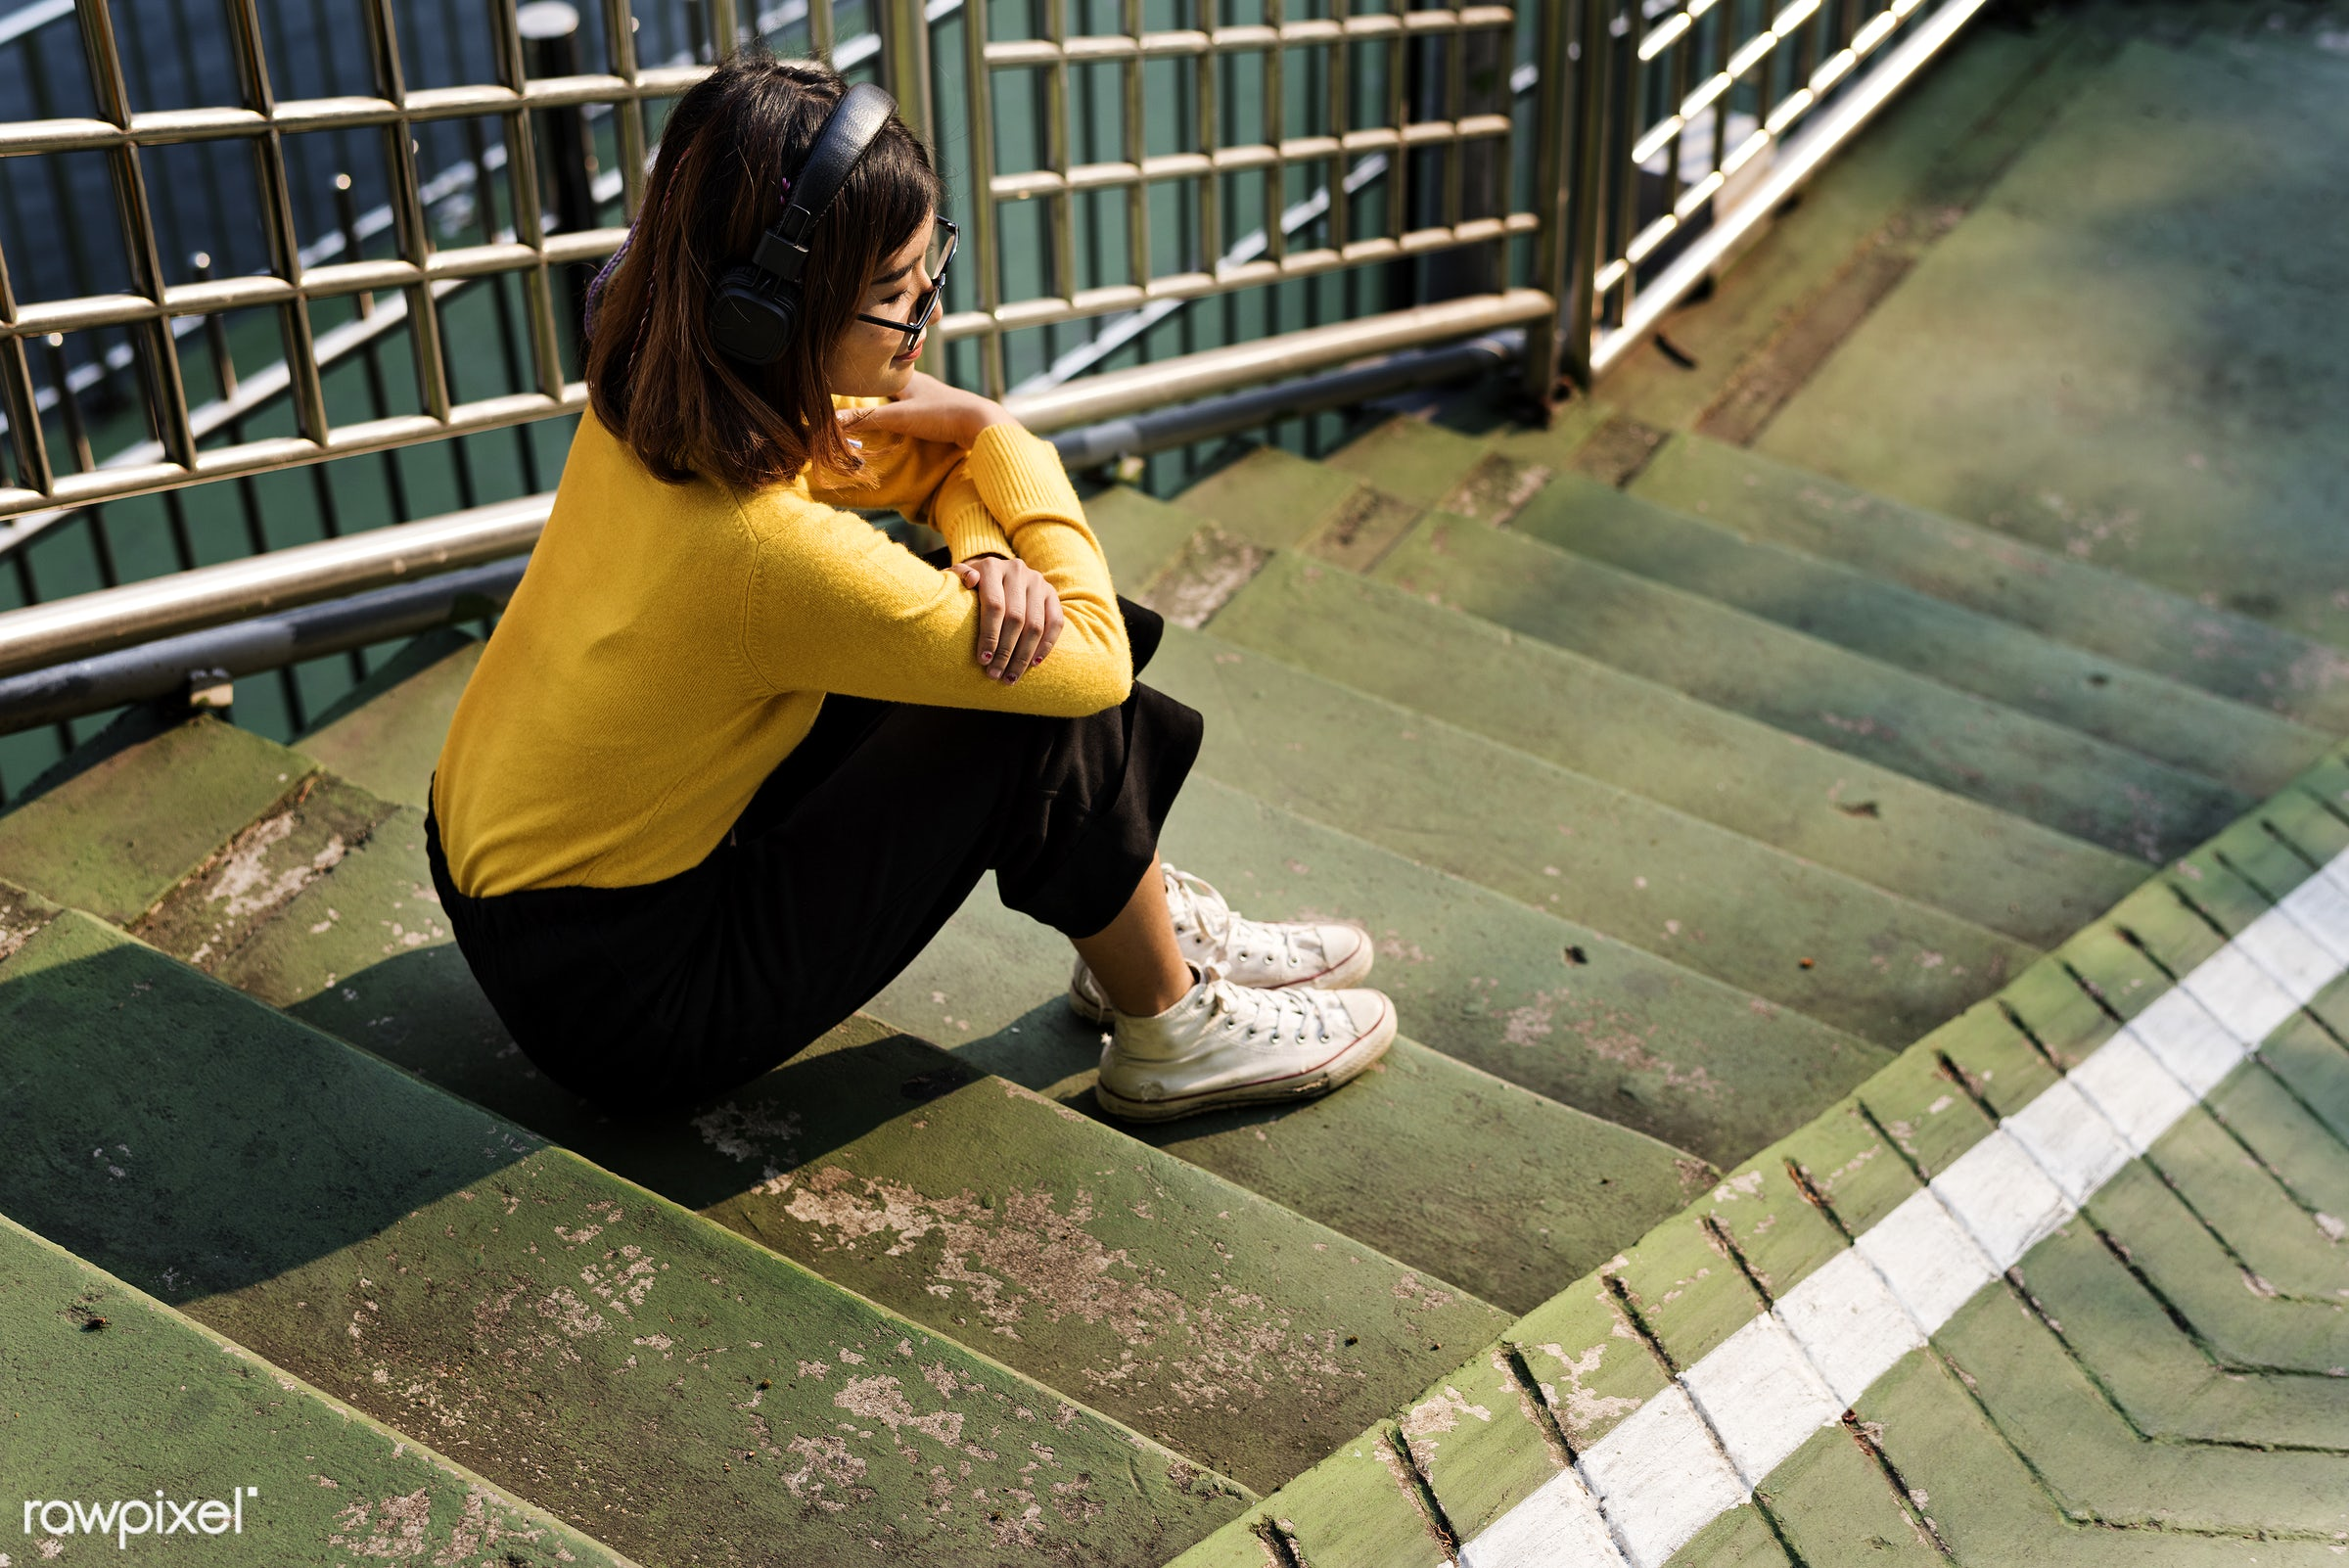 asian, woman, girl, communication, outdoors, alone, solitude, leisure, recreation, music, listening, person, steps, stairs,...